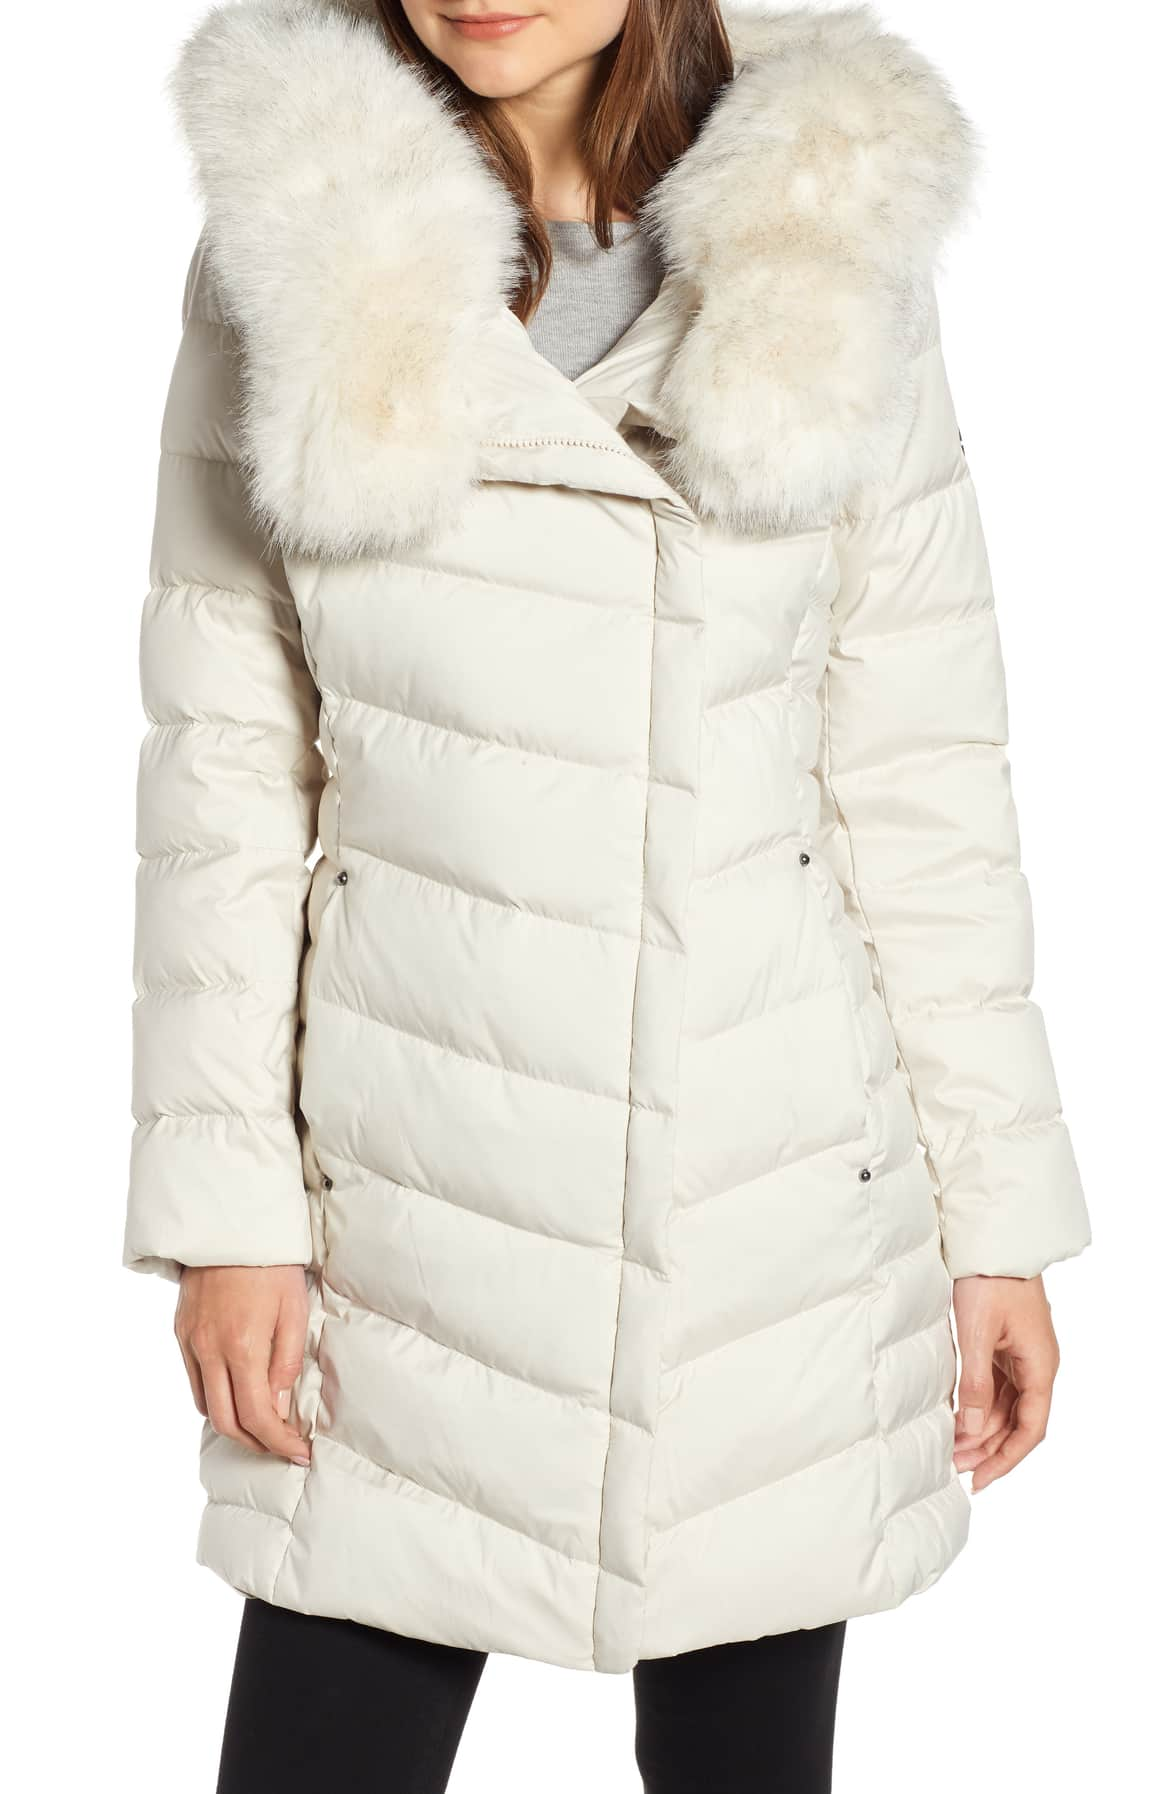 <p>A supersized ruff of soft faux fur trims the hood and neckline of a channel-quilted puffer jacket.{&amp;nbsp;}$238.00 (Image: Nordstrom){&amp;nbsp;}</p><p></p>